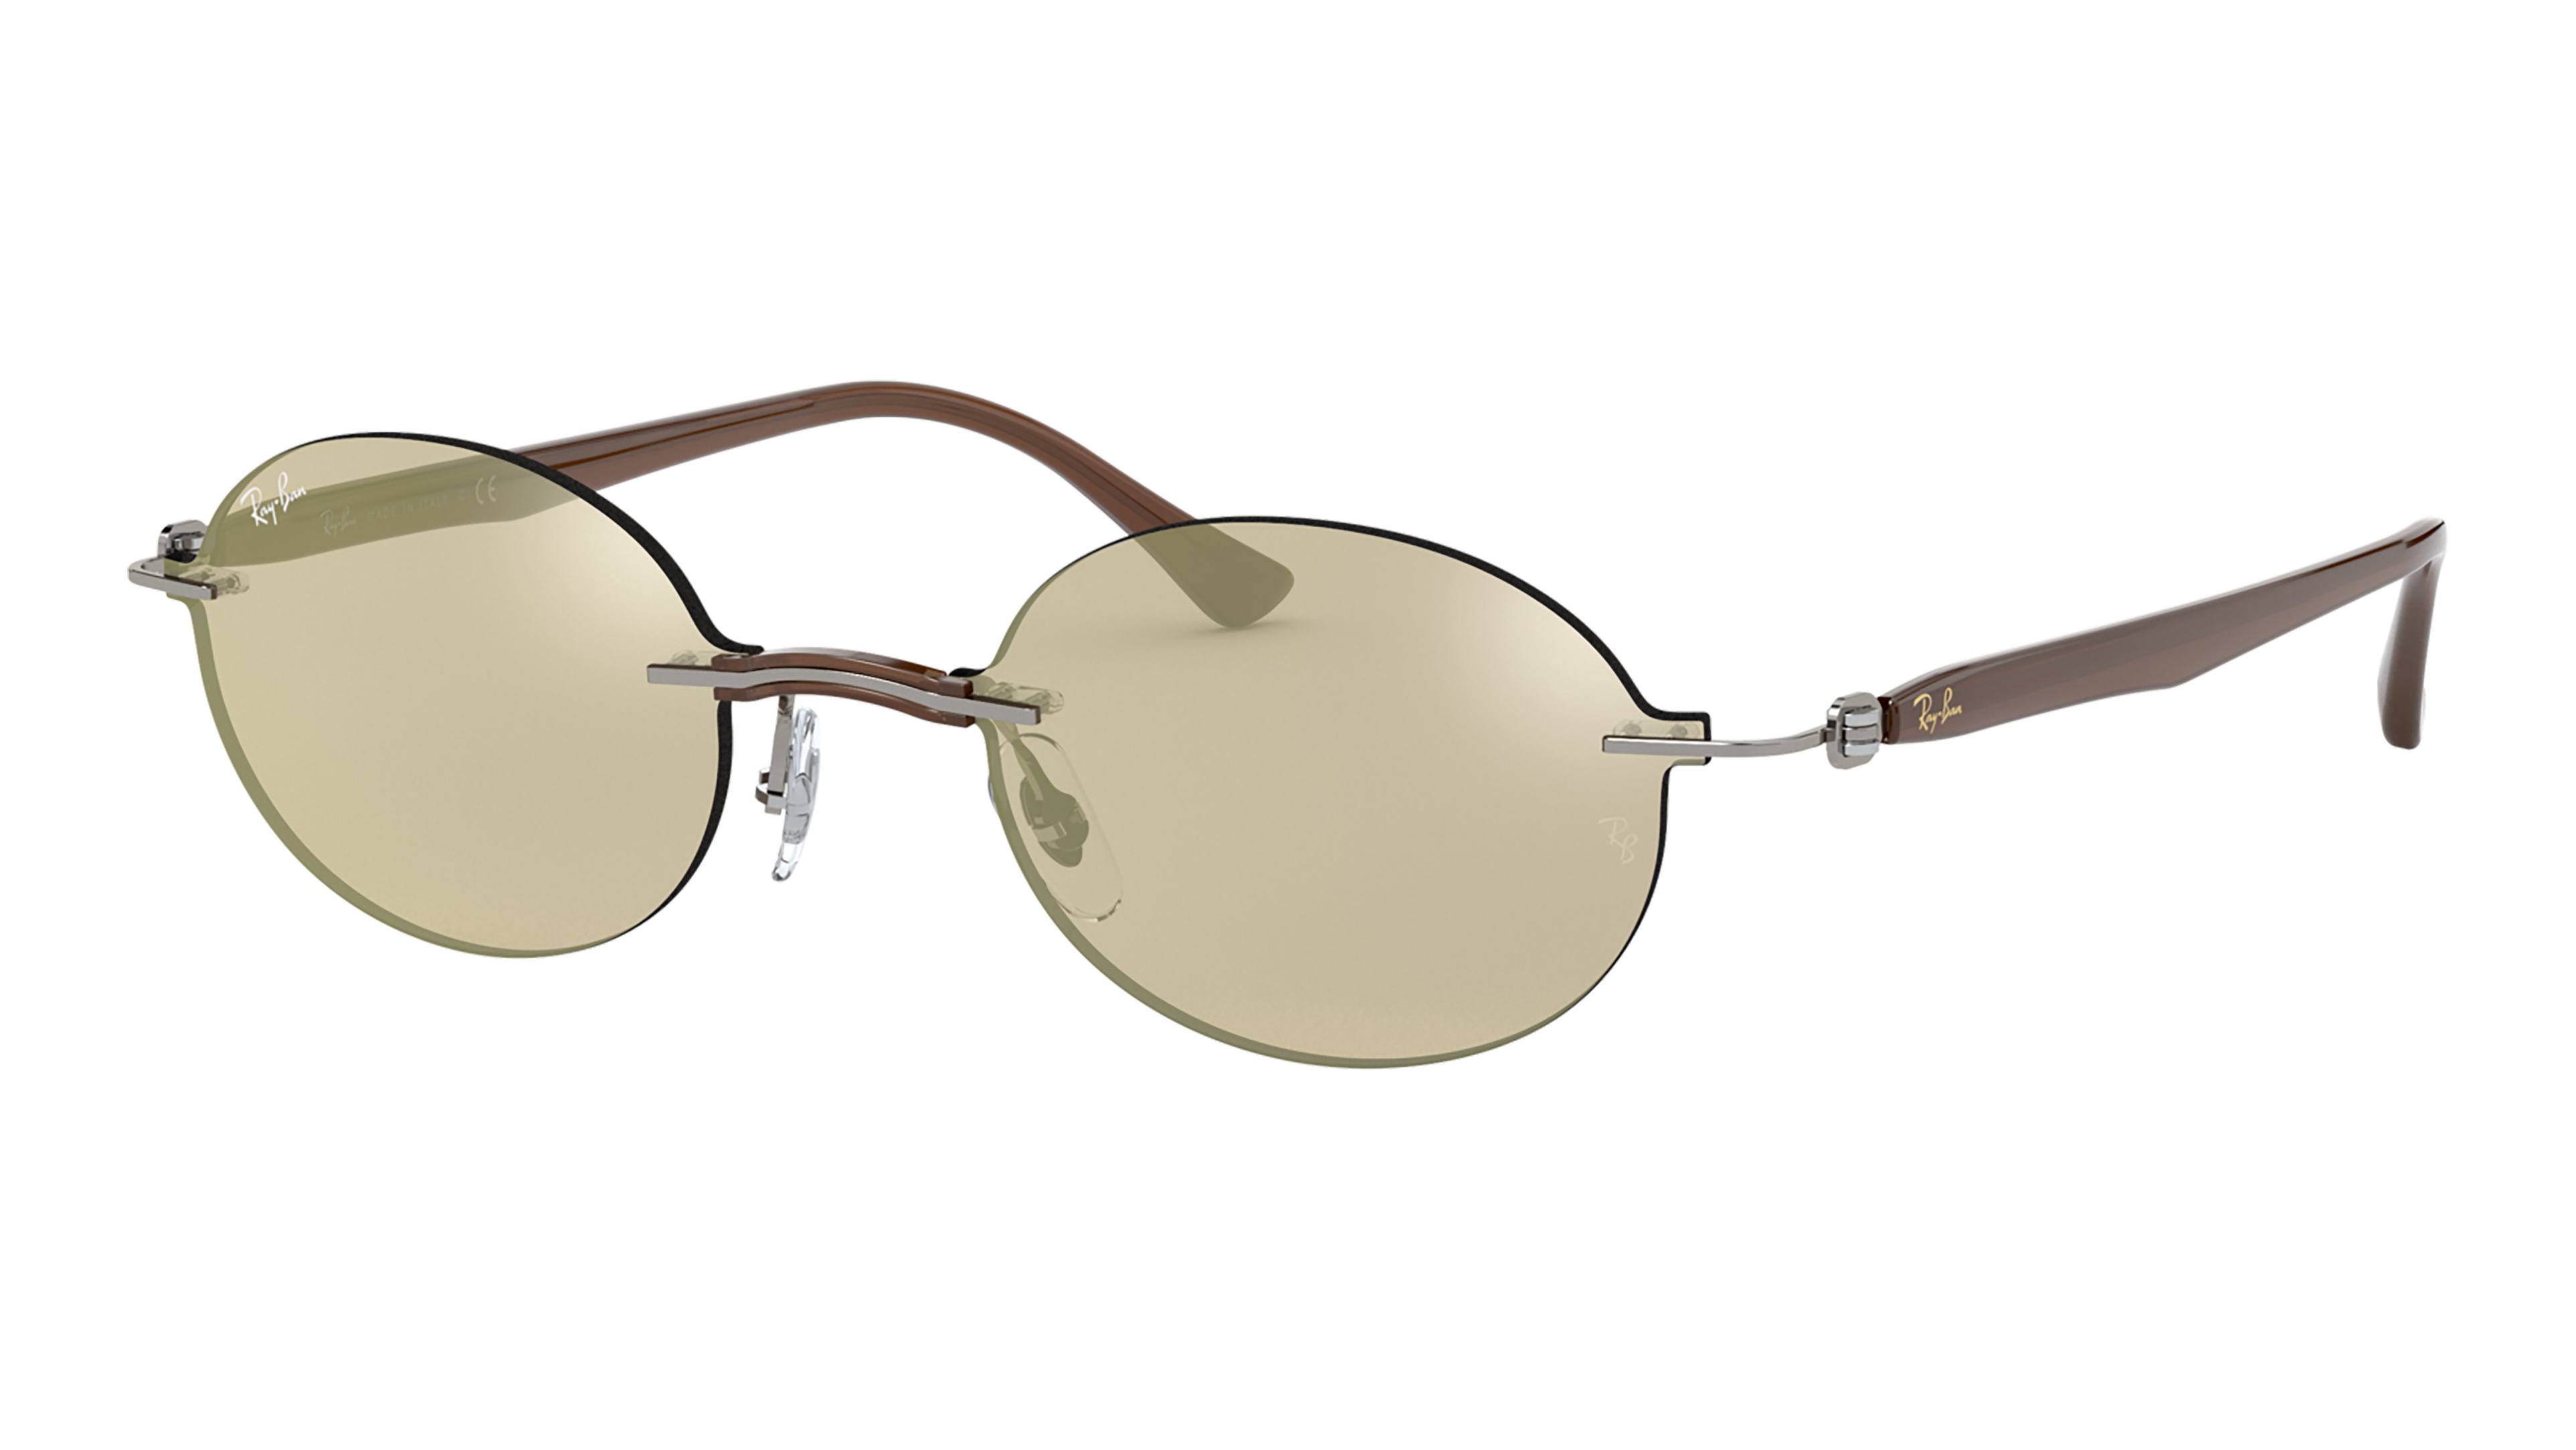 Angle_Left02 Ray-Ban Ray-Ban 0RB8060 159/5A 54/15 Transparant, Zilver/Grijs